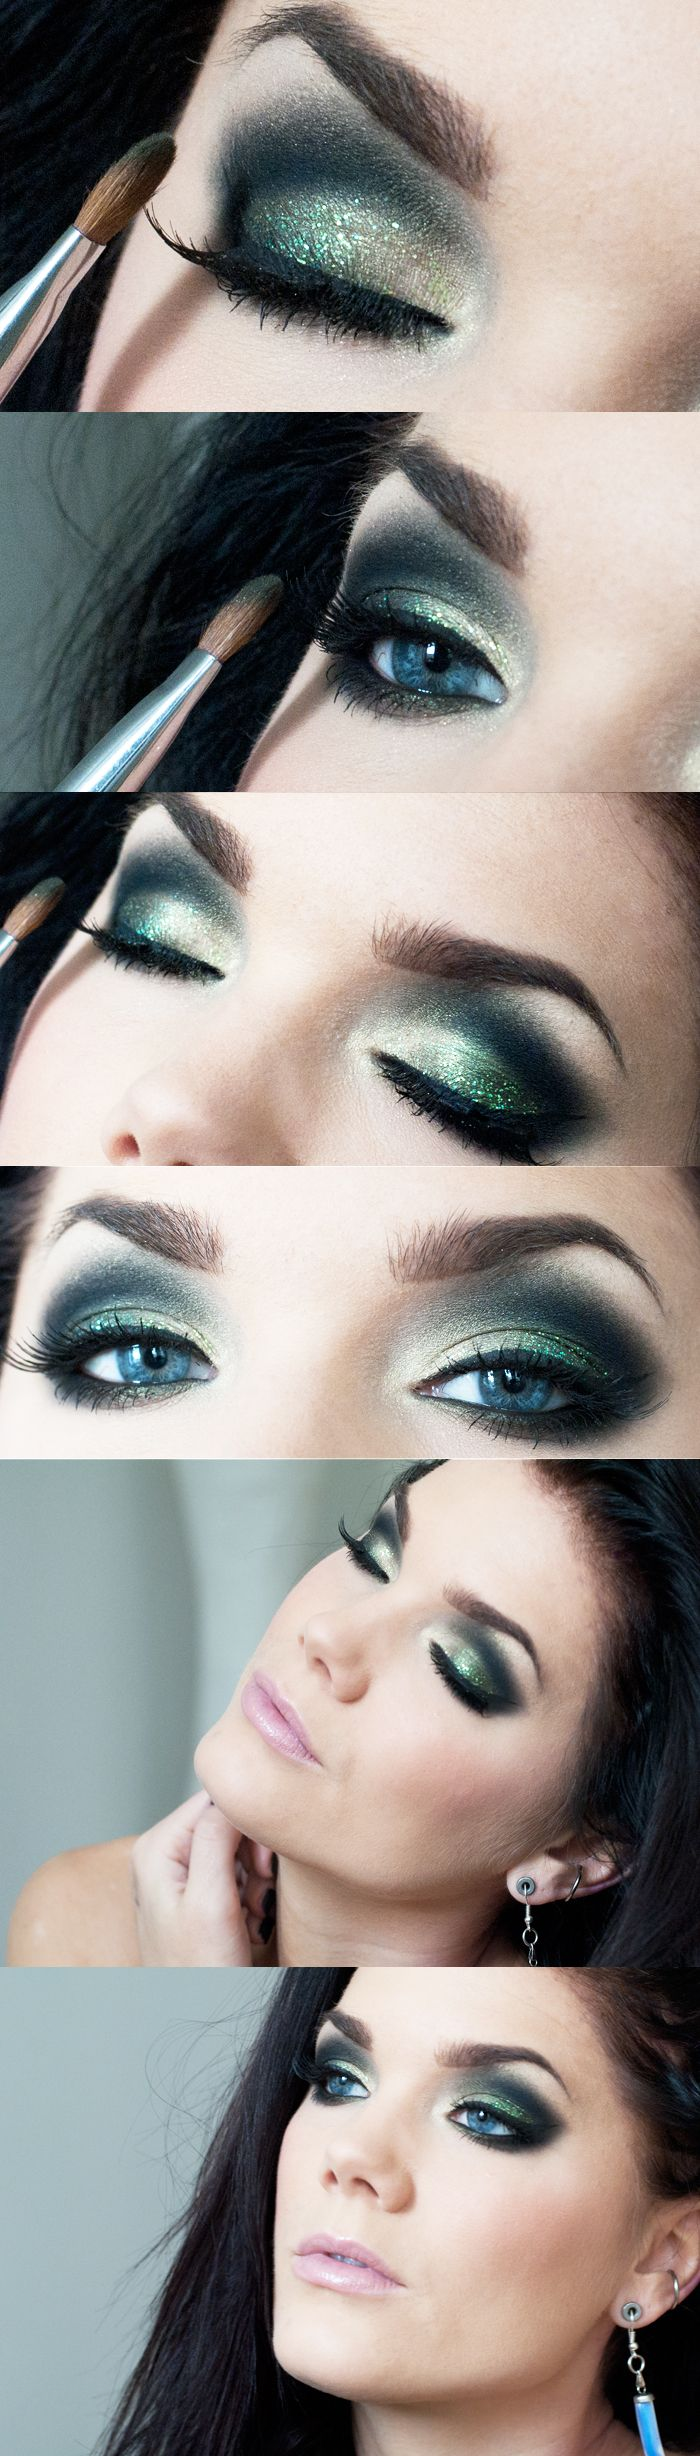 Today's look - Every breath that I take I can feel you  Linda Hallberg - makeup artist